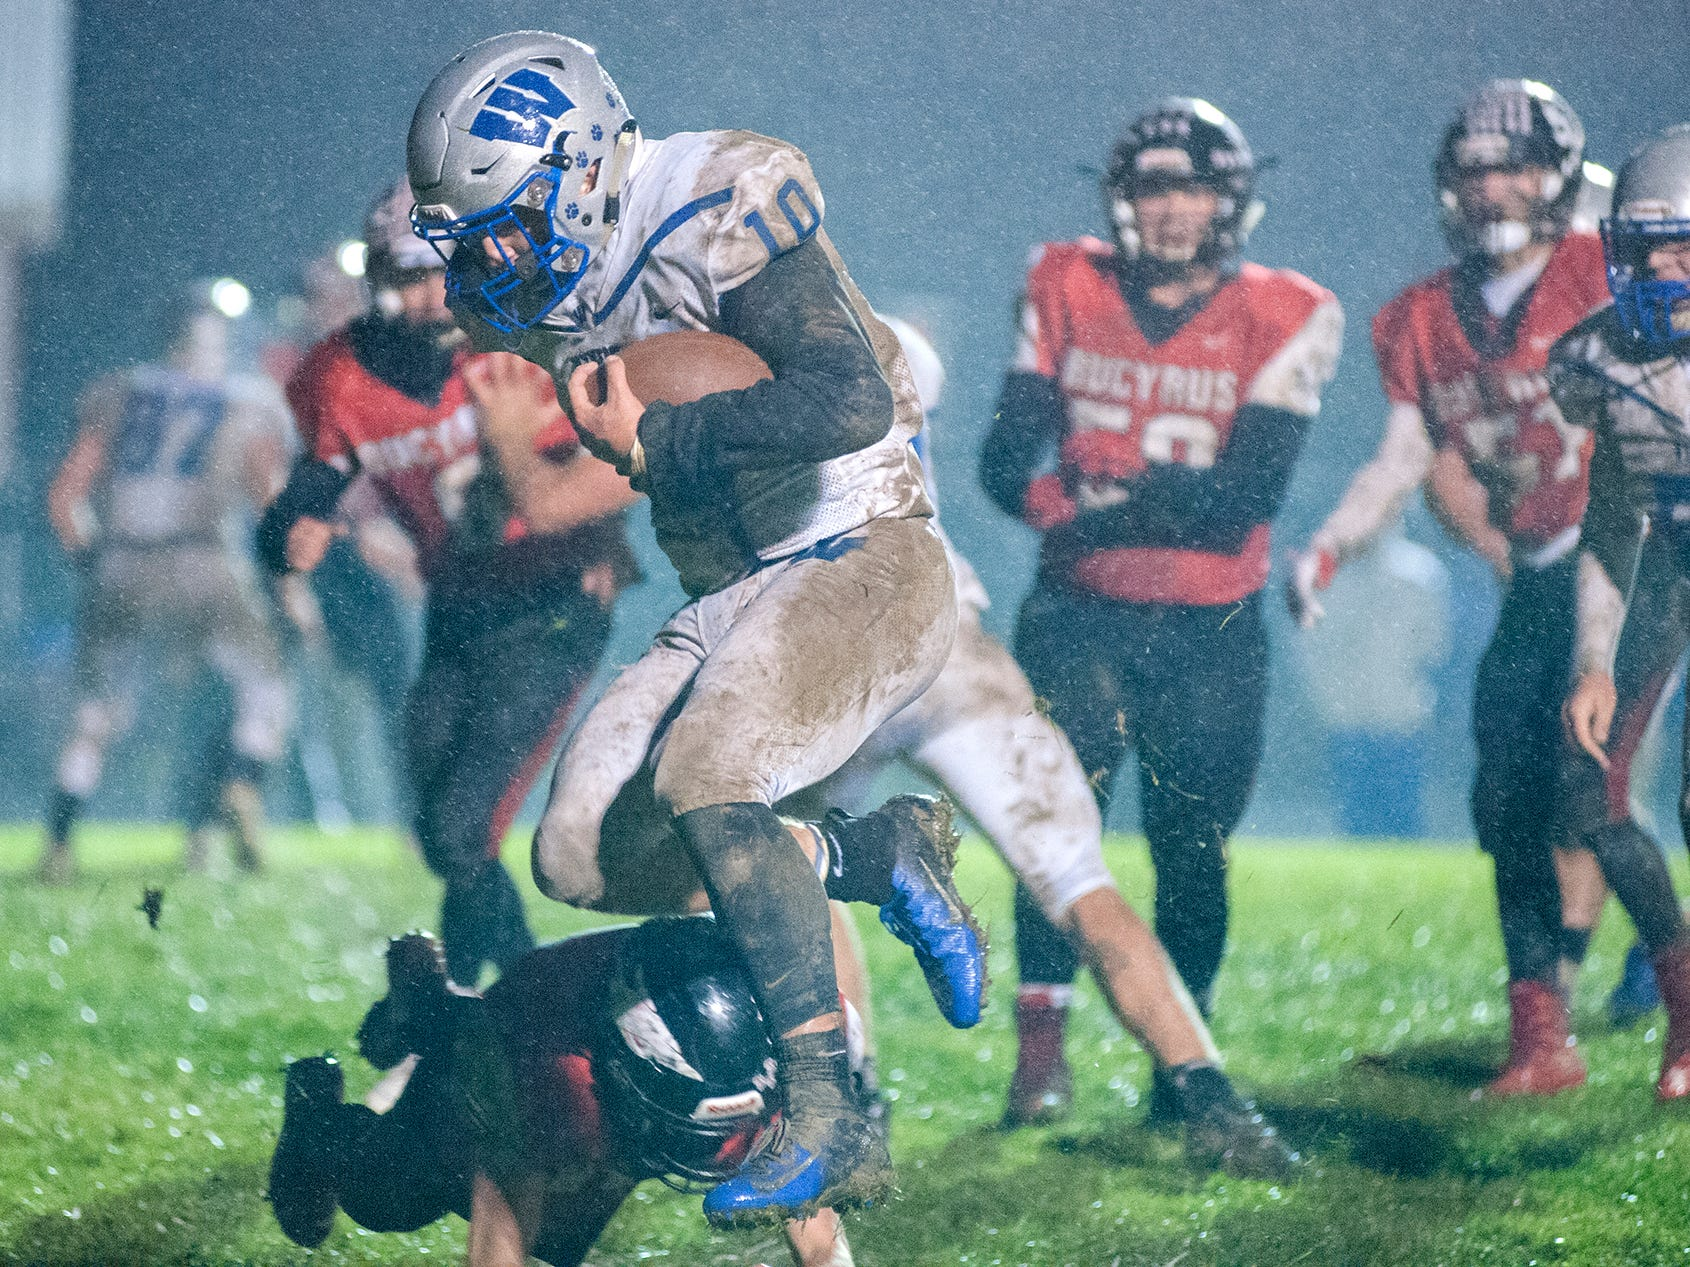 Wynford's Blake Sparks leaps into the end zone for a two-point conversion.